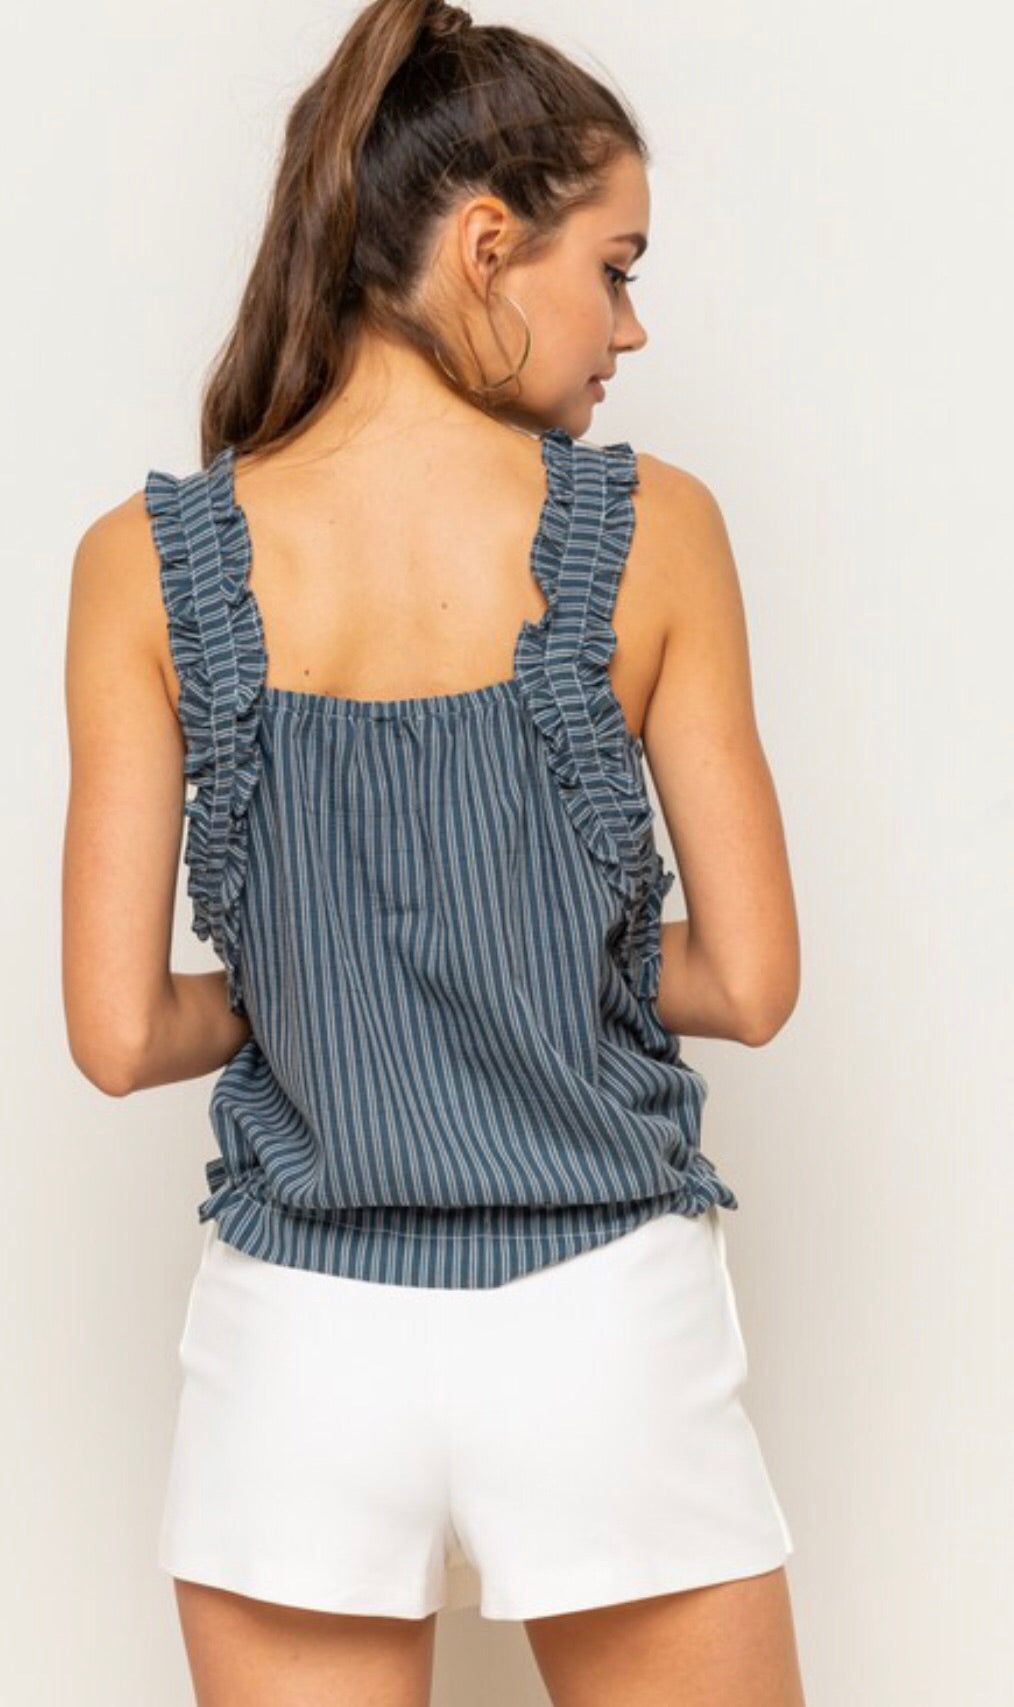 Striped Ruffle Straps Cinched Top